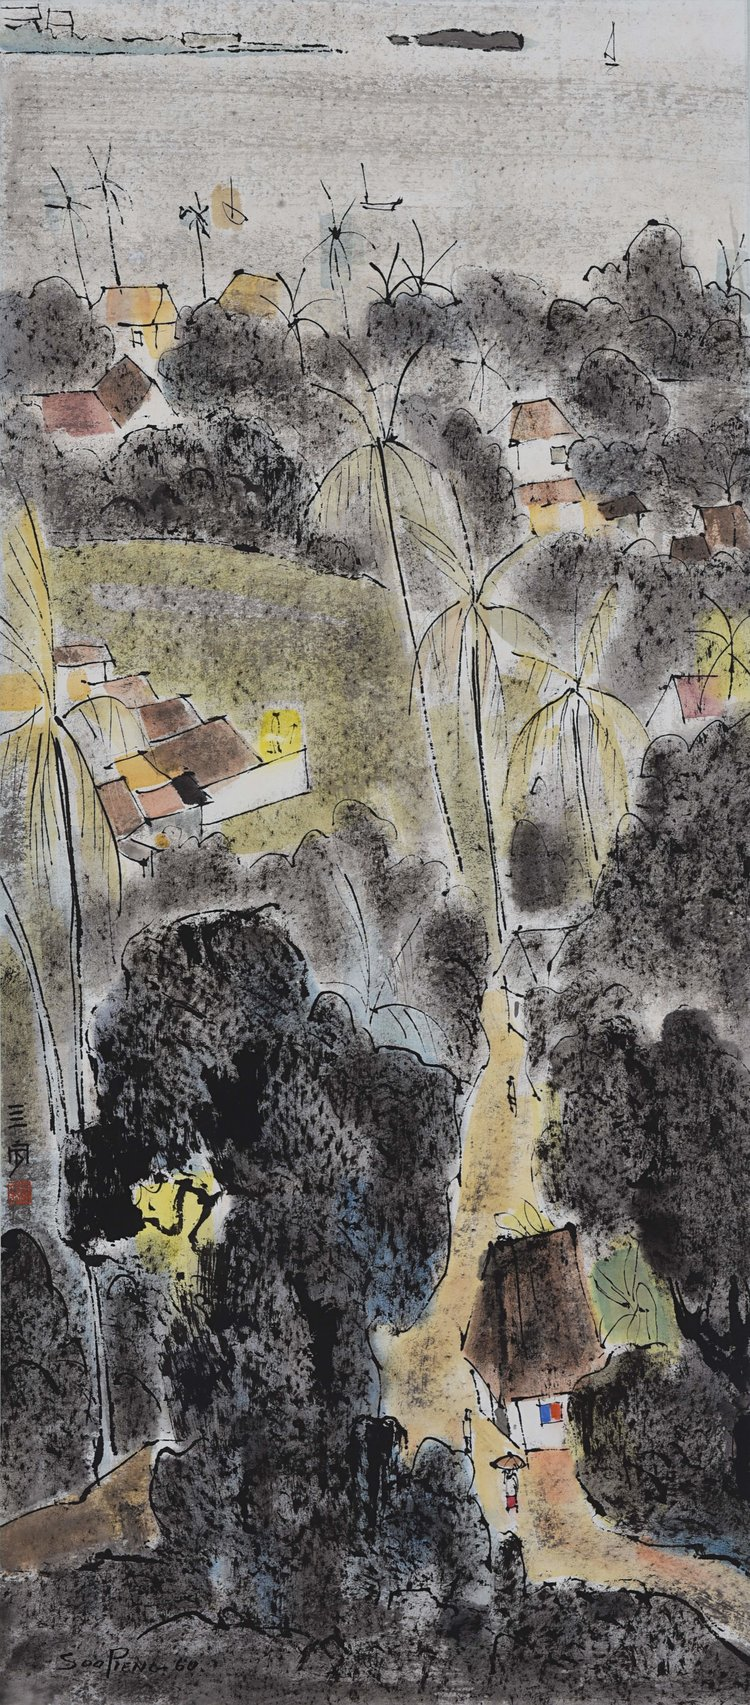 Cheong Soo Pieng, Landscape with a Sea View, ink and colour on paper, 88 x 38.5 cm, 1960